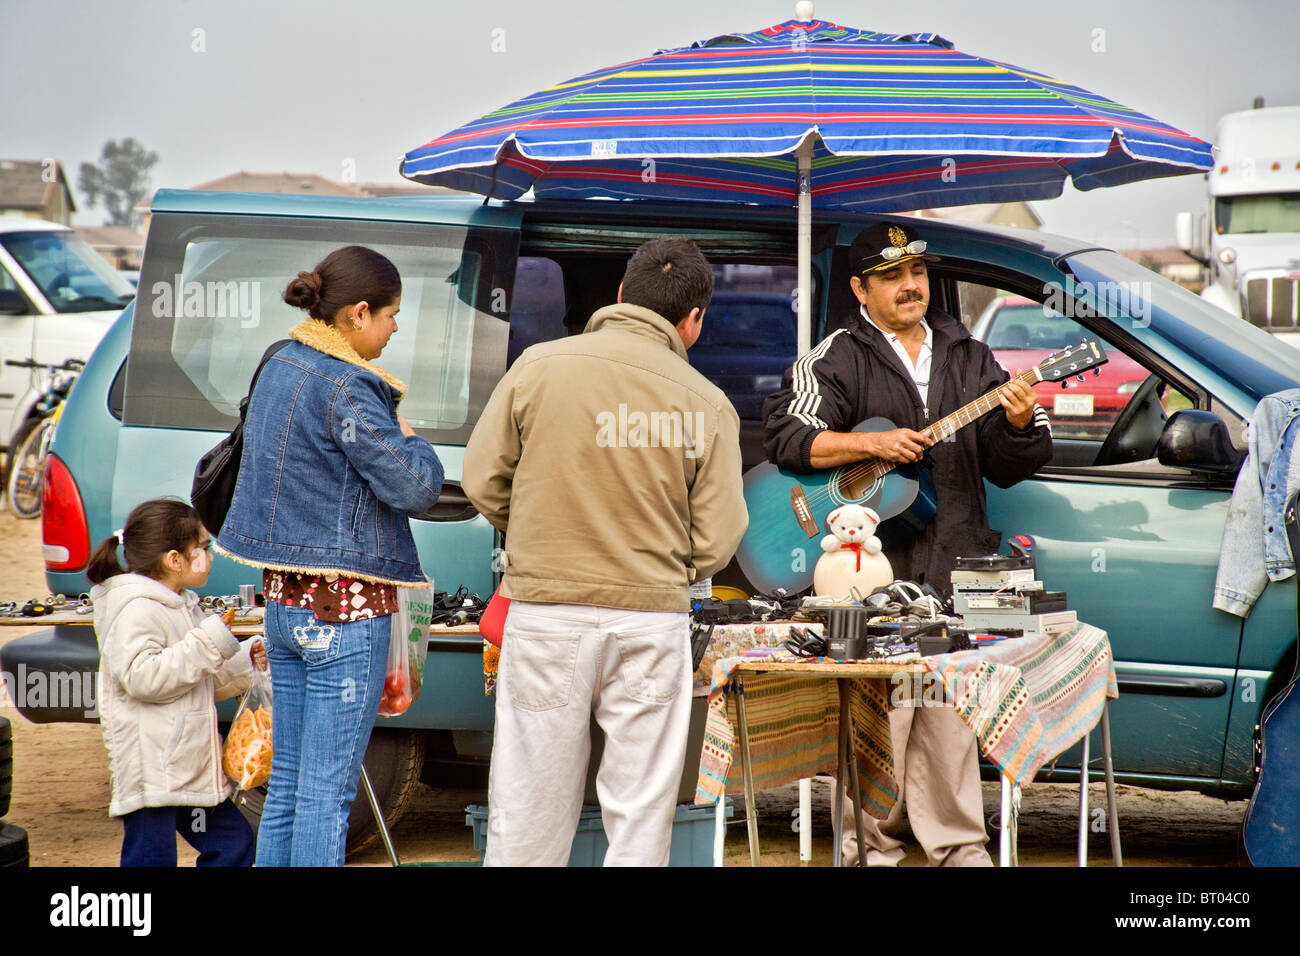 A Hispanic merchant plays the guitar as customers peruse his 'flea market' items in Atwater, CA. - Stock Image